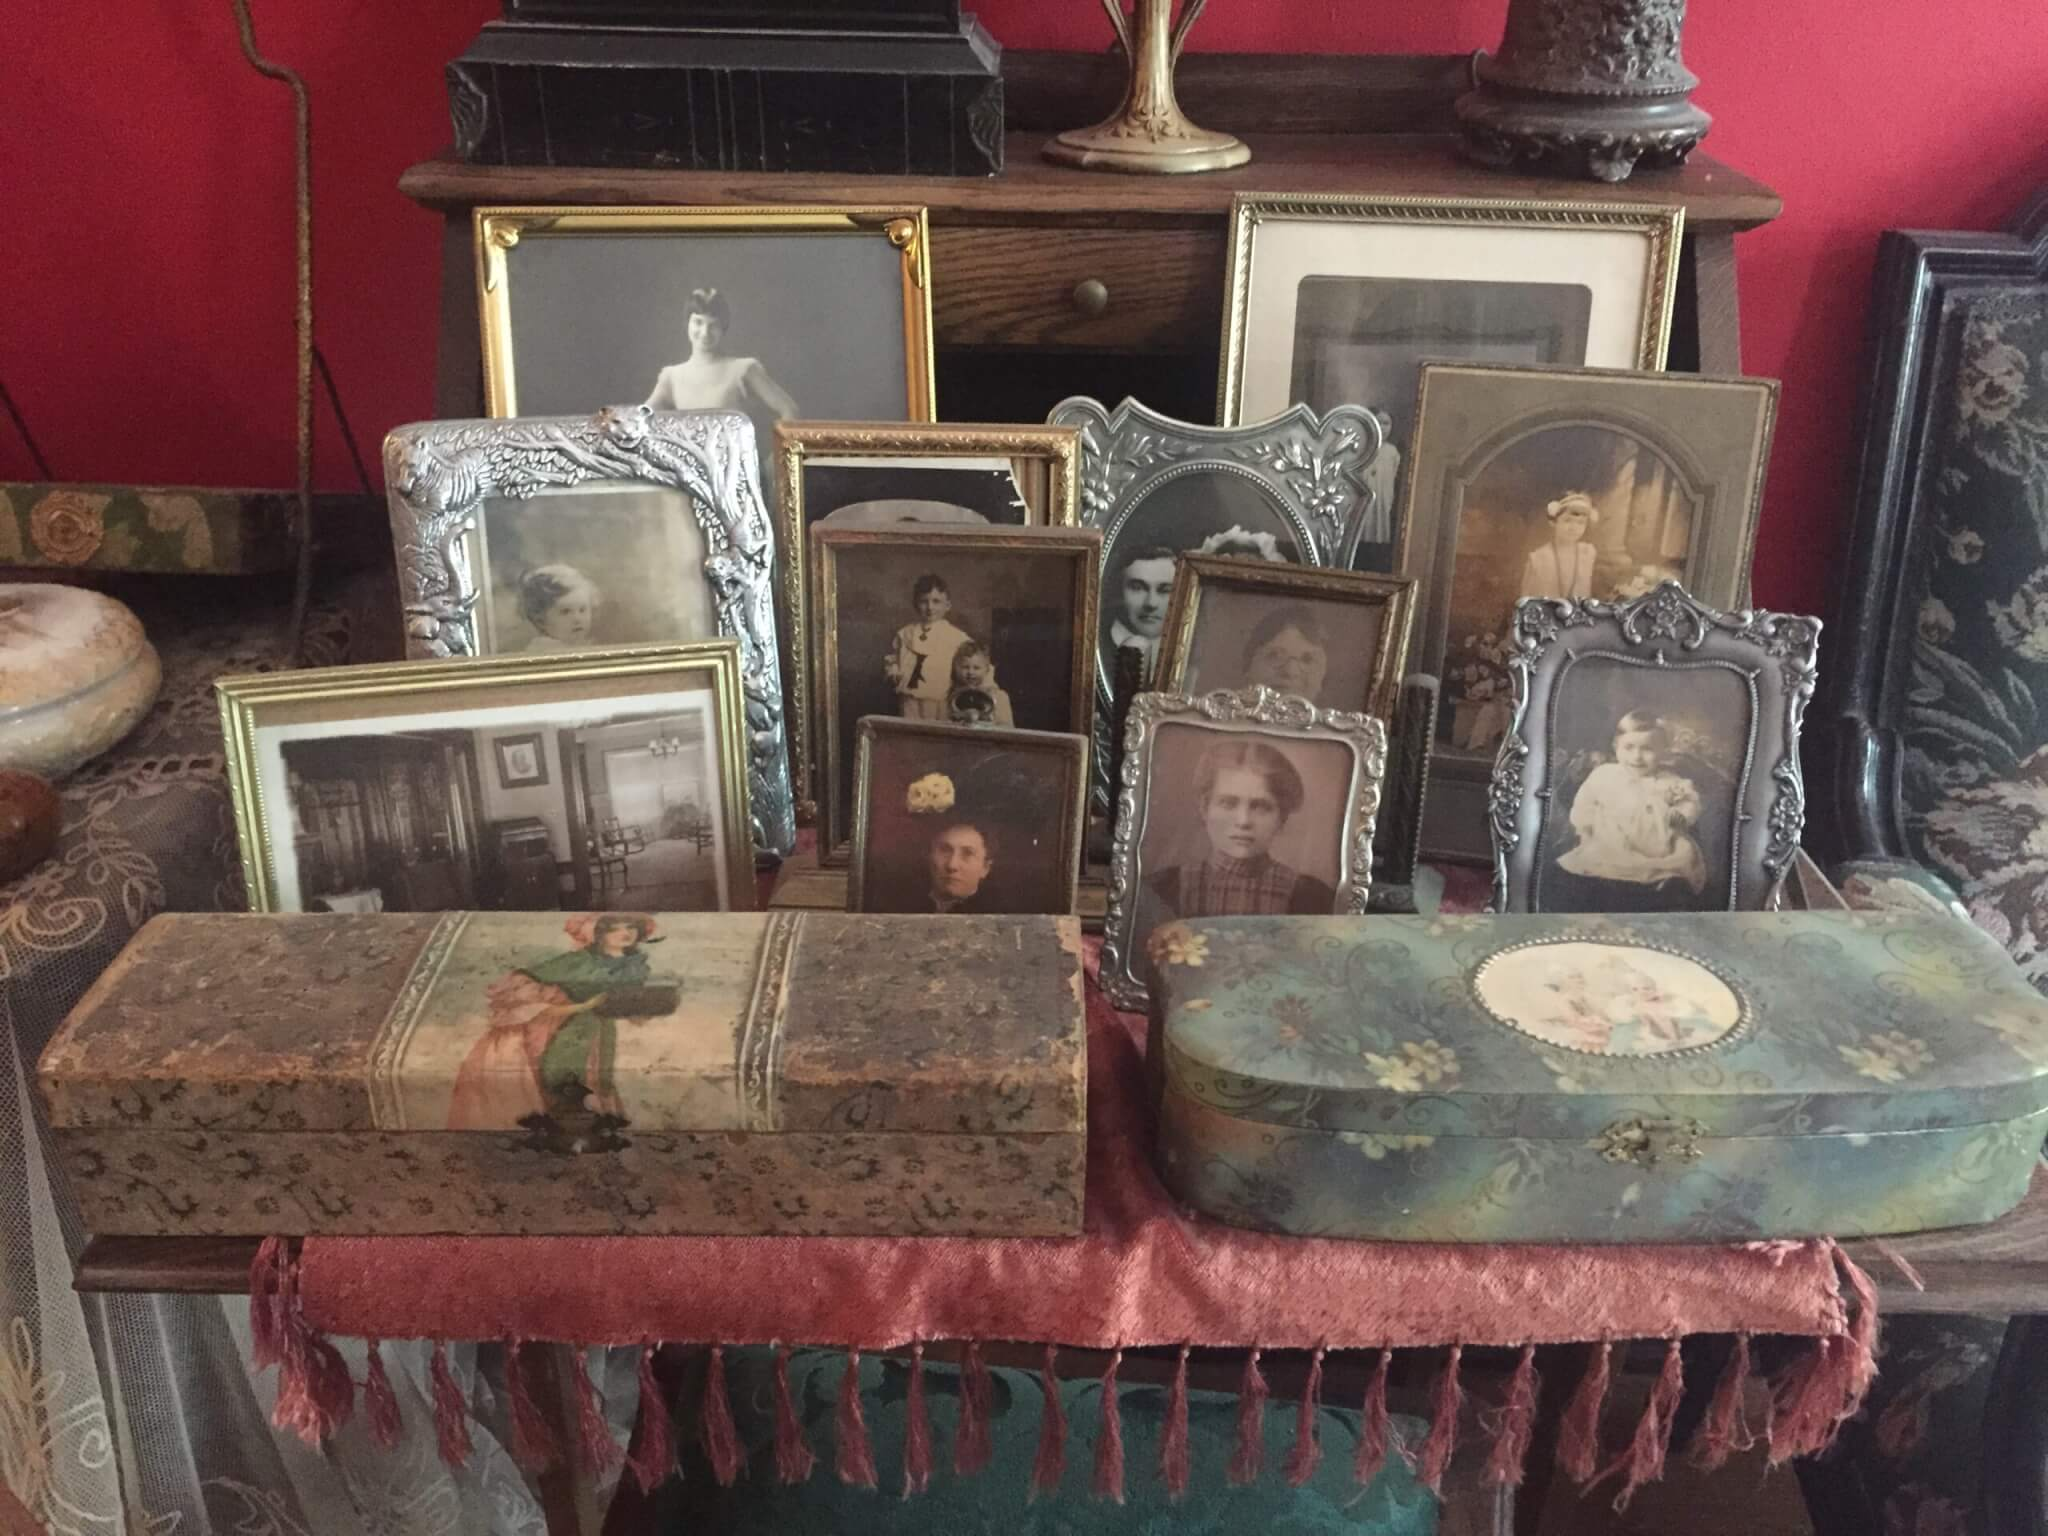 heirloom and object restoration services. Fine art, furniture, object, sculpture, antique restoration services. Porcelain, glass, chandeliers, wallpaper, books, statues, figurines, collectibles and ephemera restoration services for the insurance and claims industry.